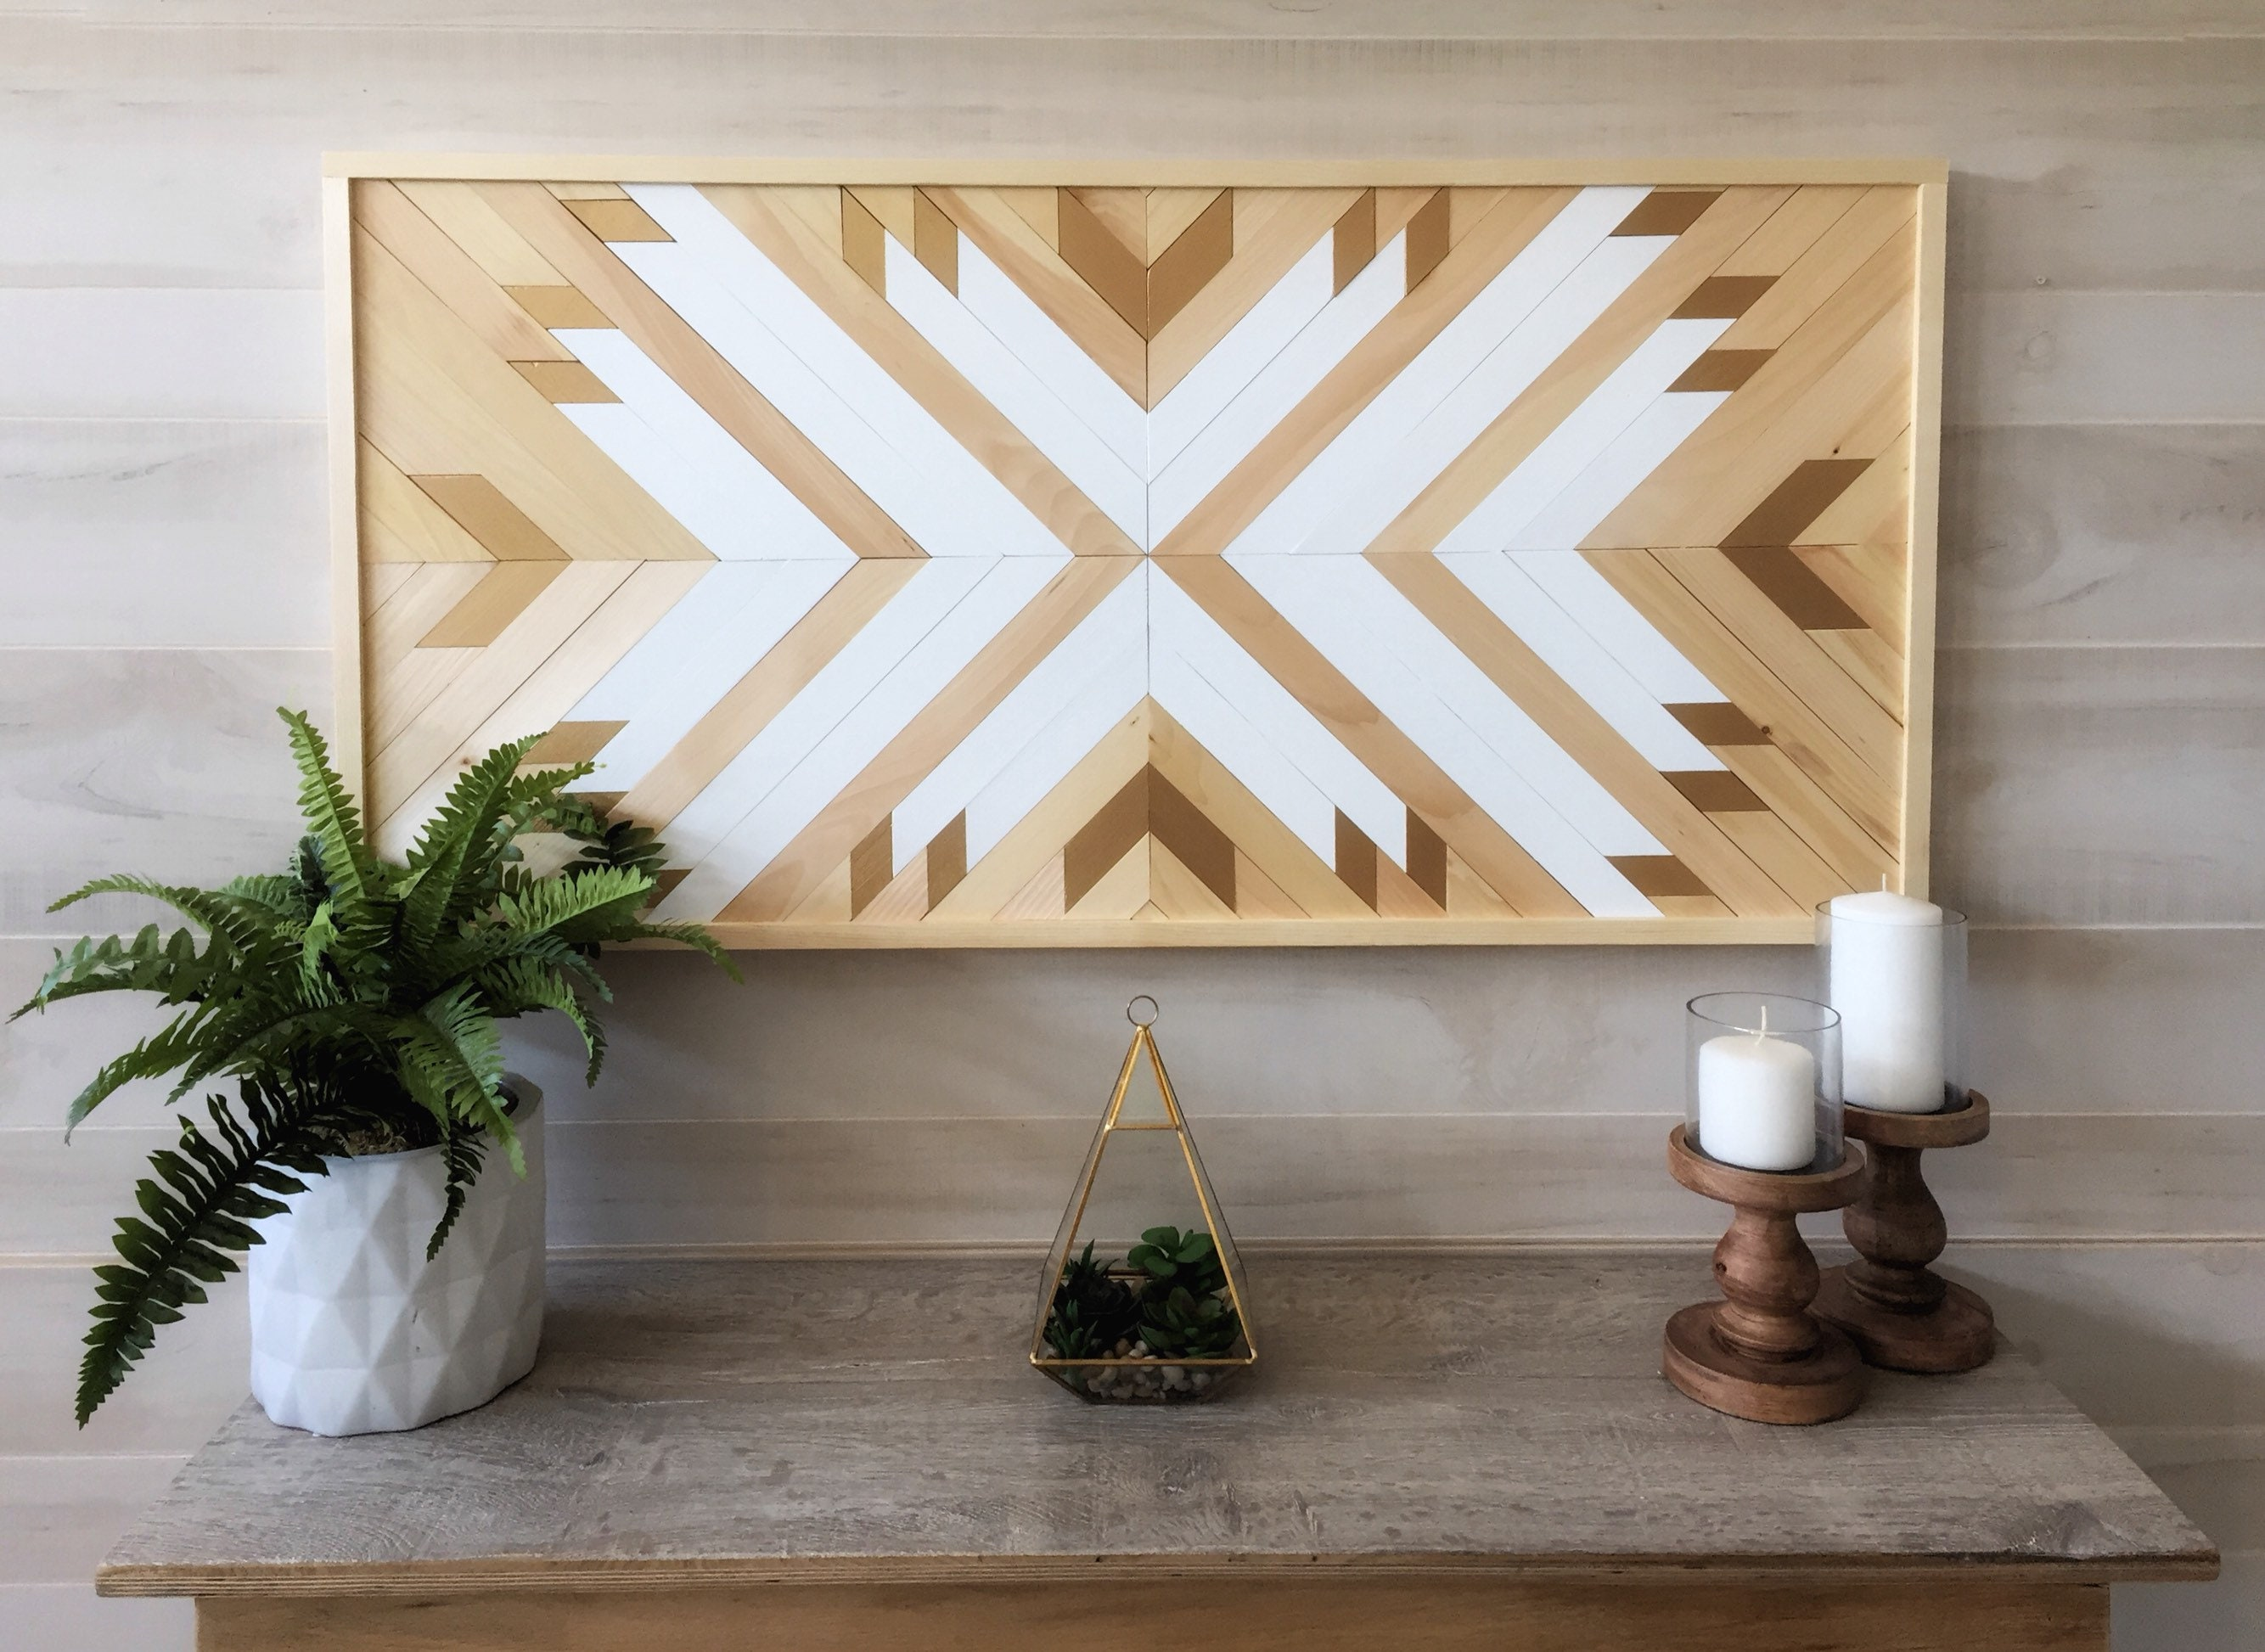 Wood Wall Art, Wood Wall Decor, Living Room Decor, Geometric Art, Modern Art,  Boho Decor